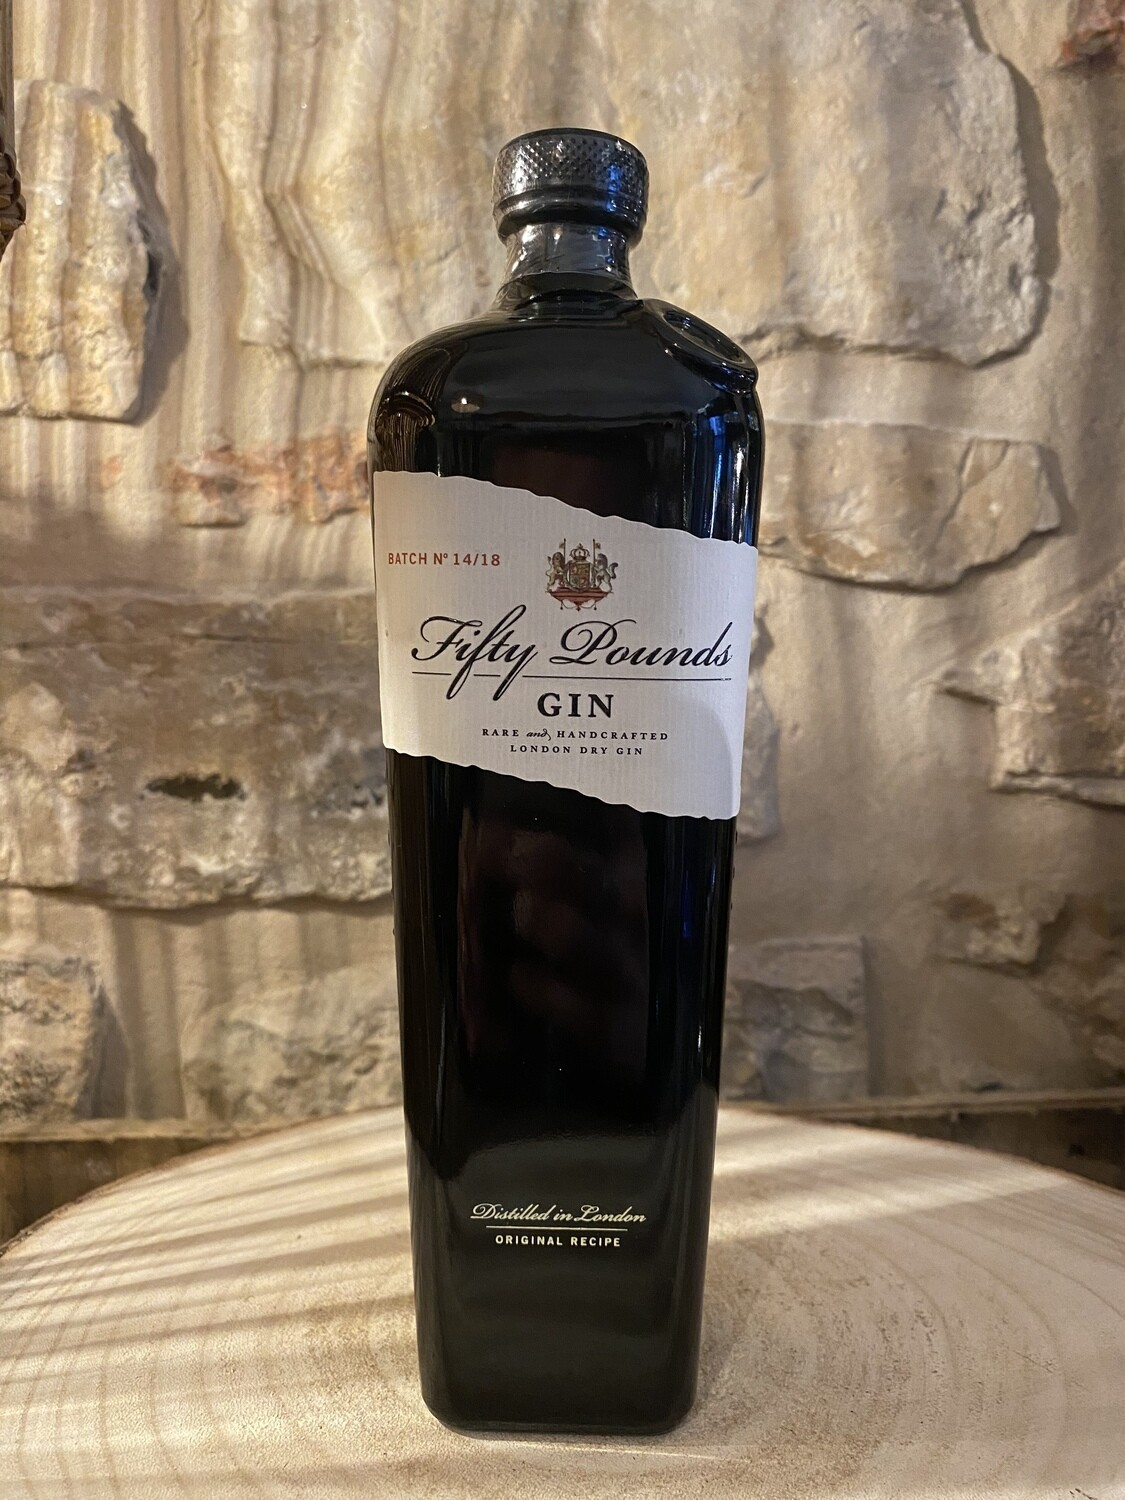 Gin Fifty Pounds, London